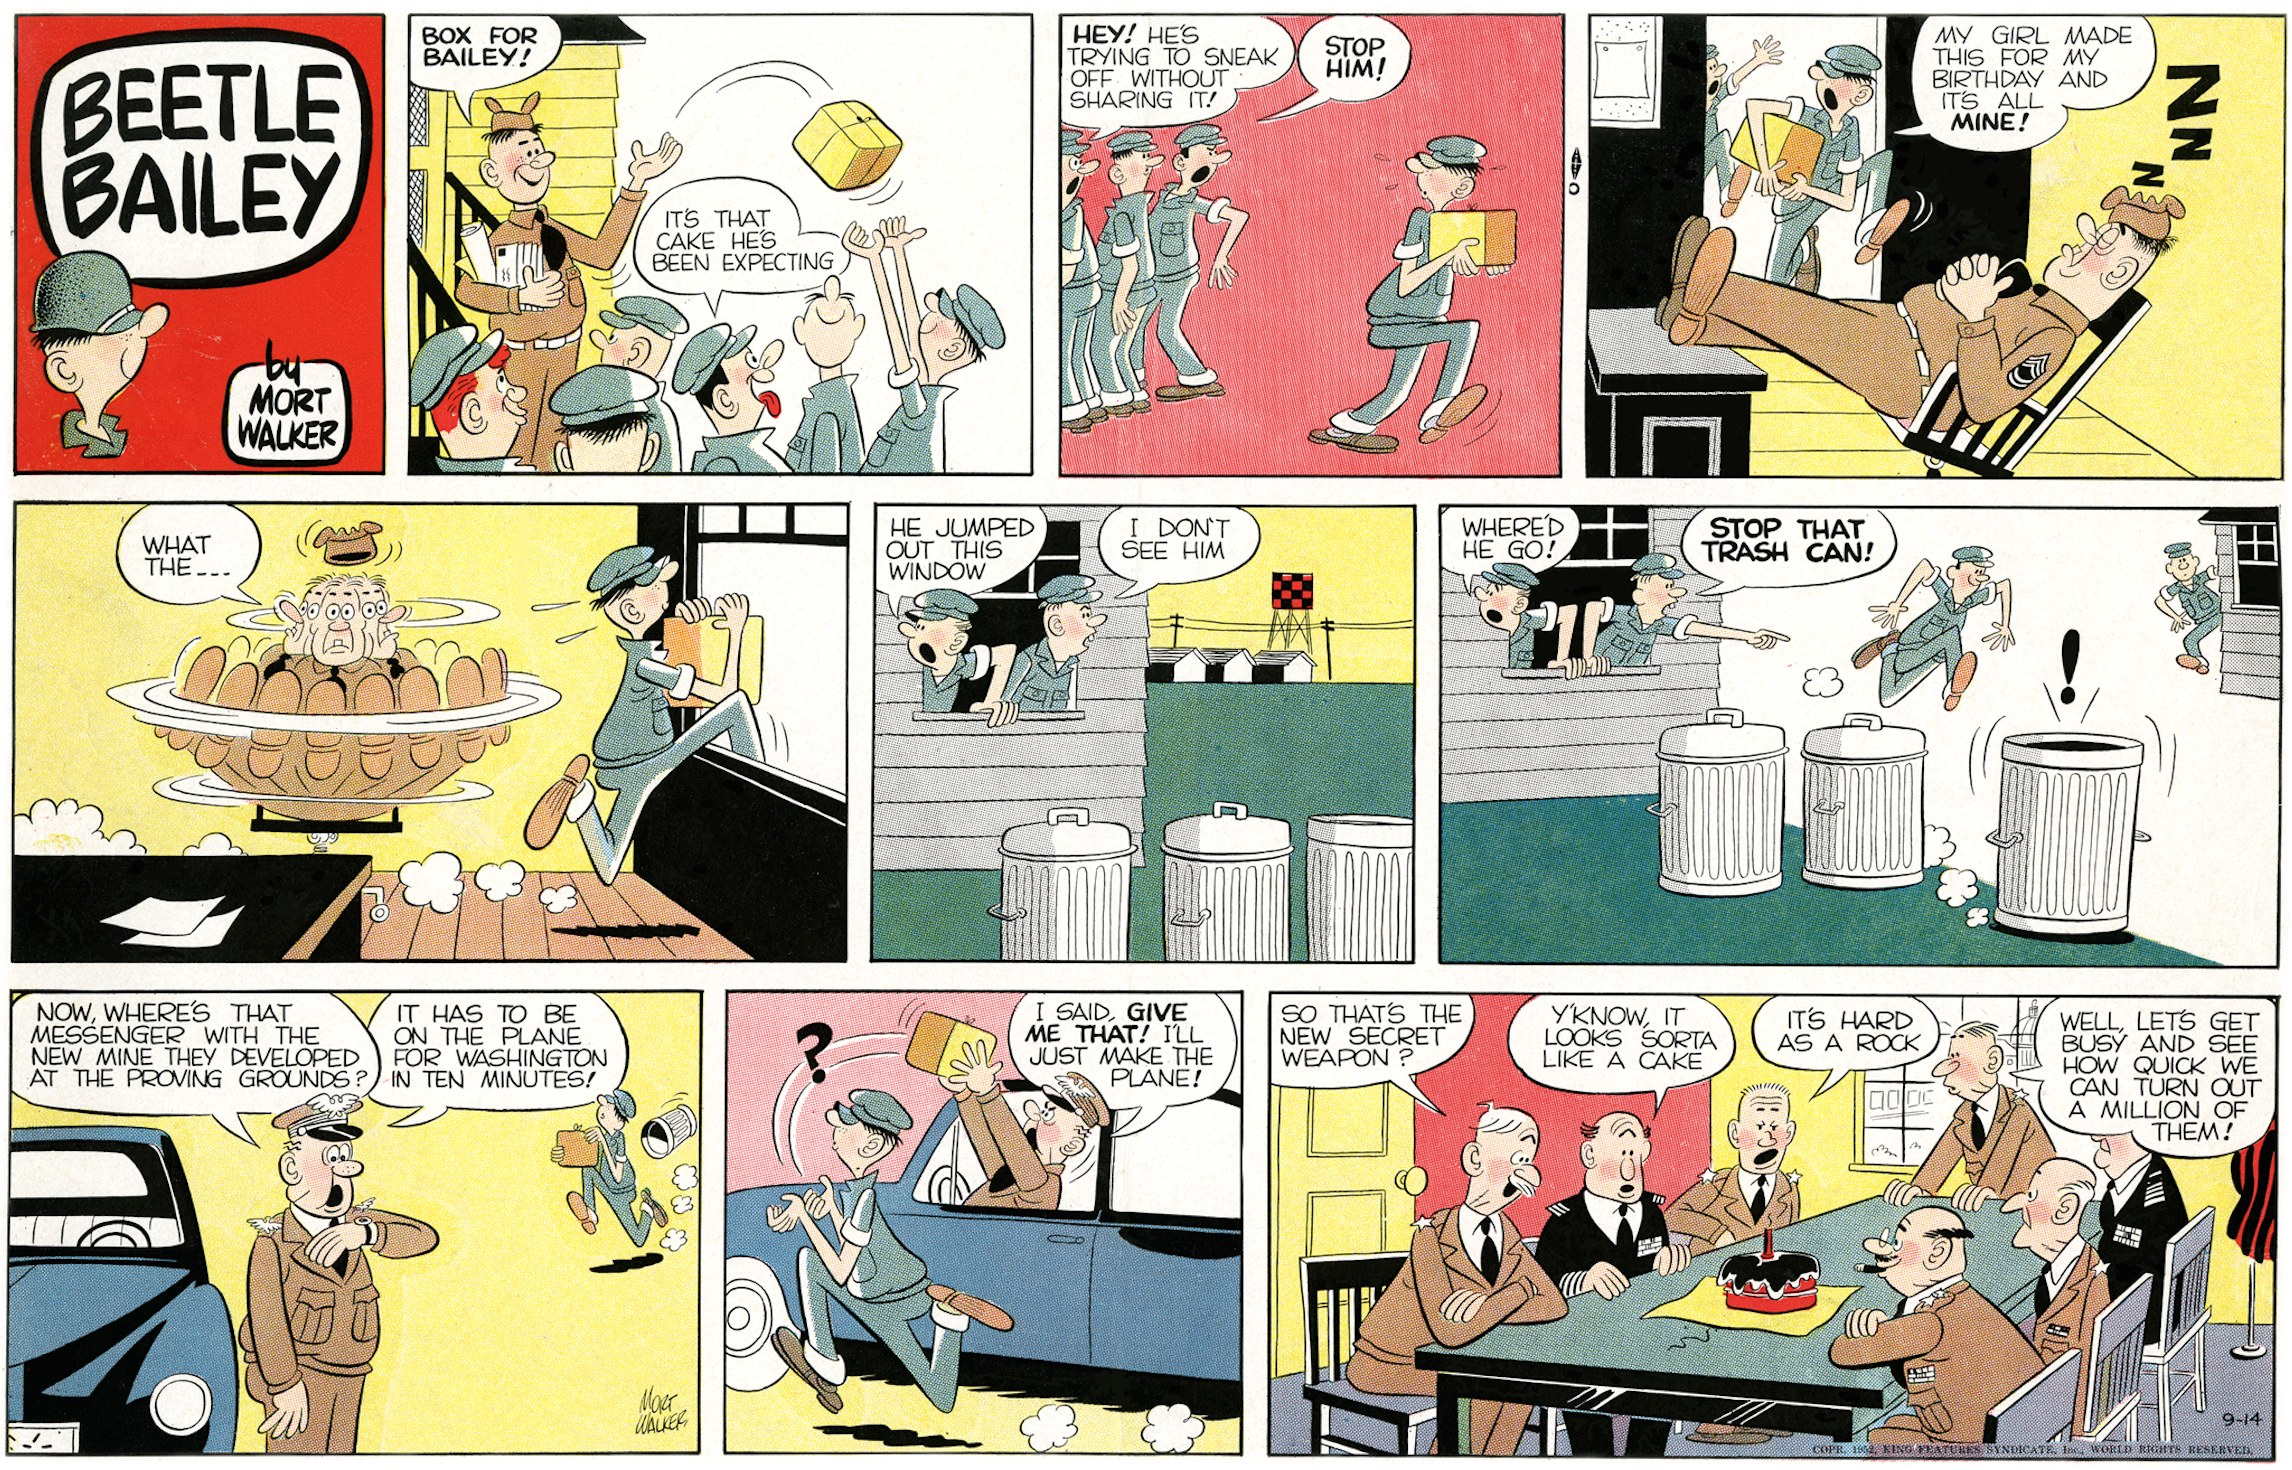 Beetle Bailey Sunday page, color proof, September 14, 1952.